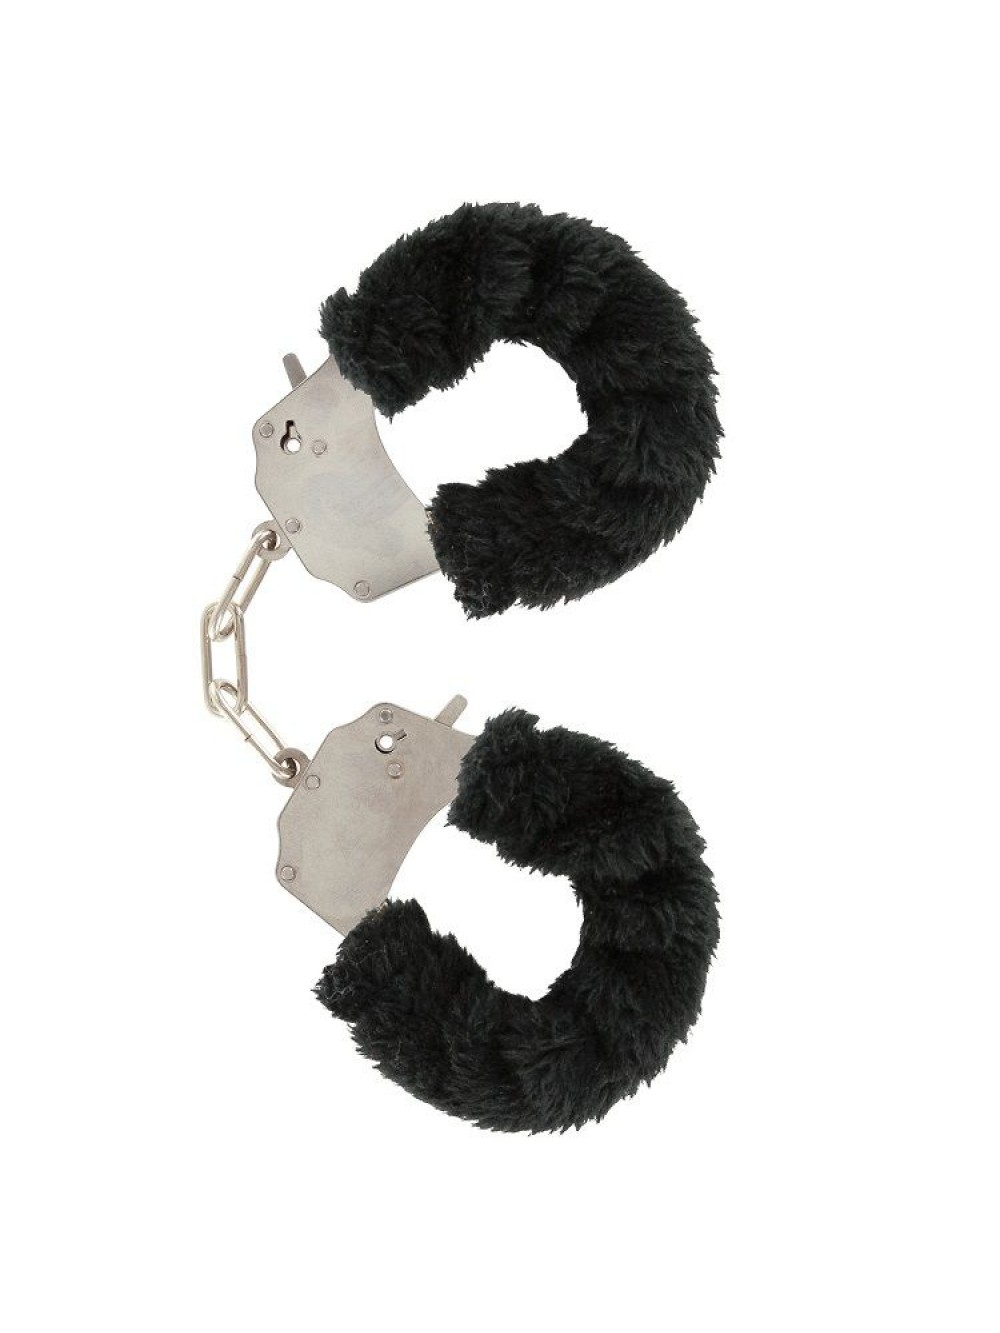 FURRY FUN CUFFS LECHEROUS BLACK